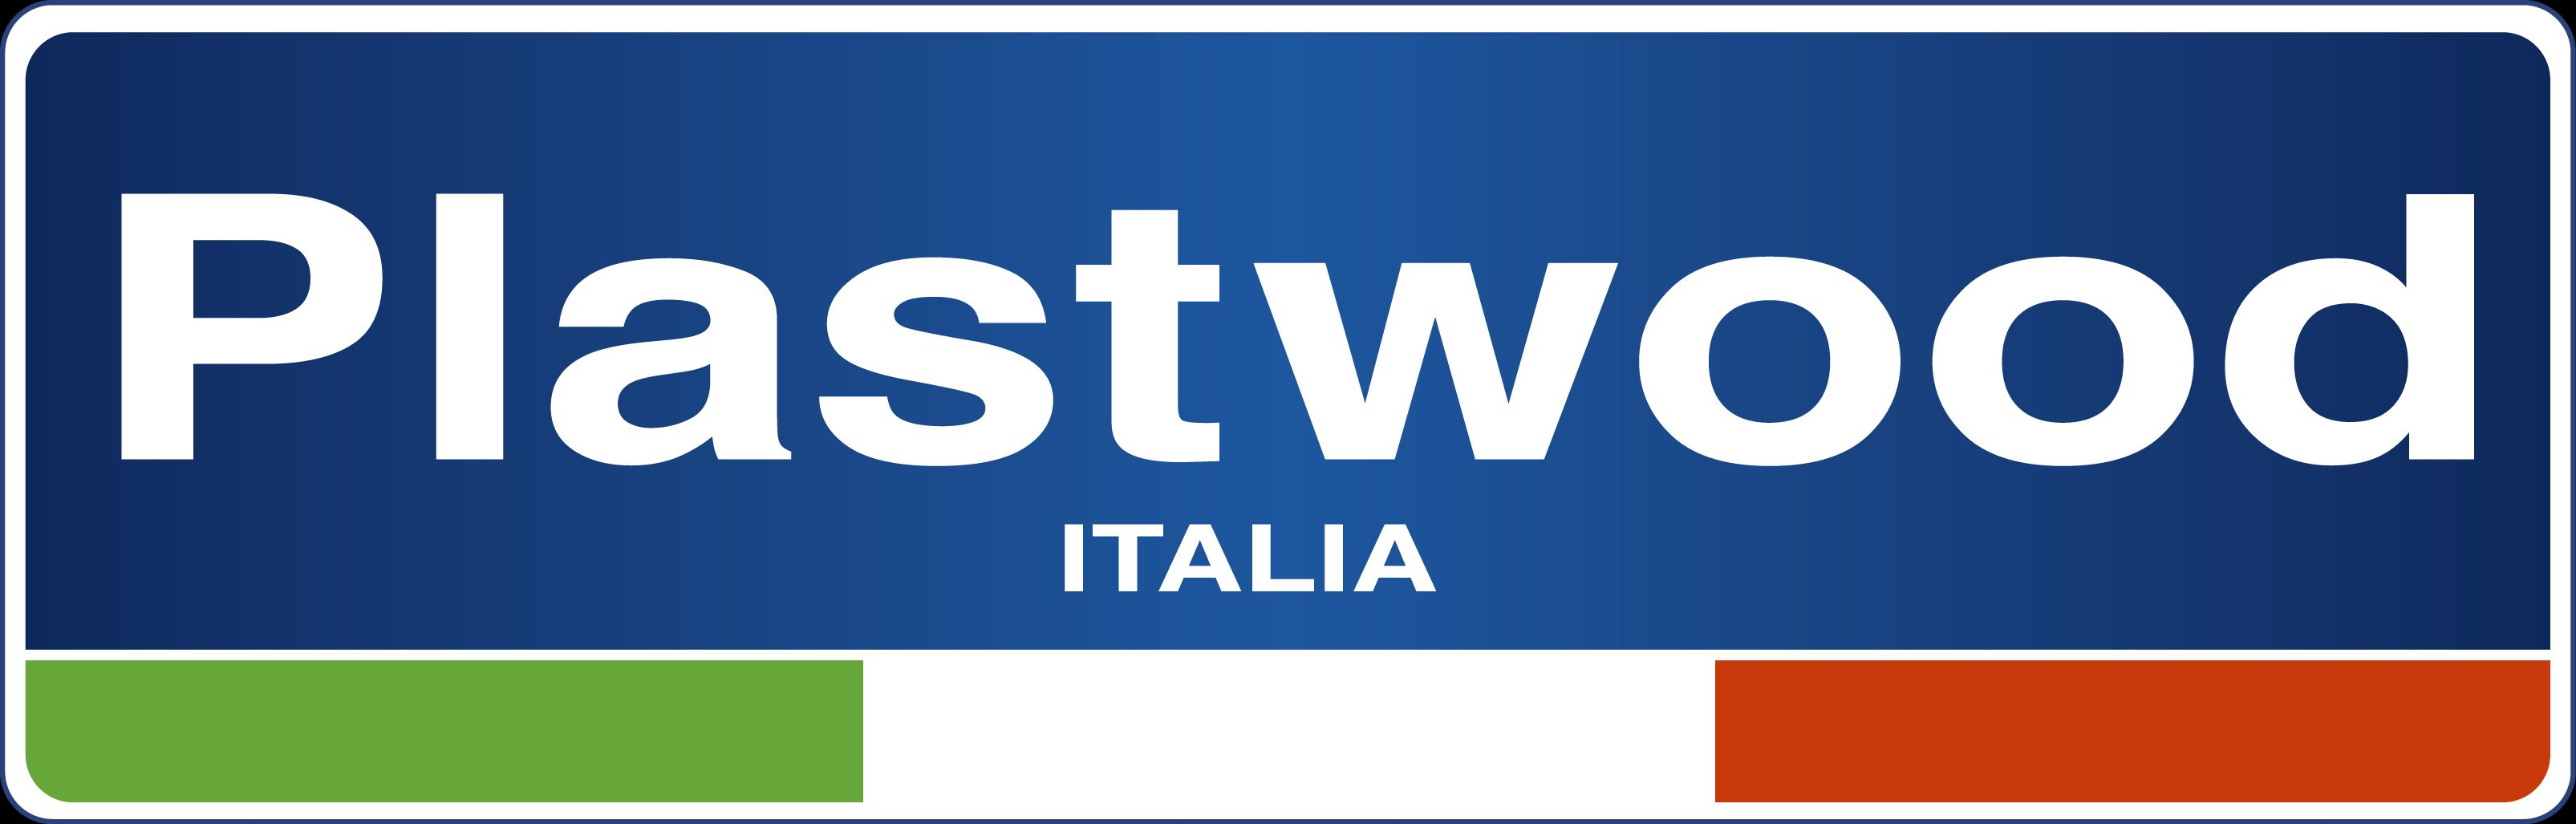 LOGO PLASTWOOD ITALIA no pay off